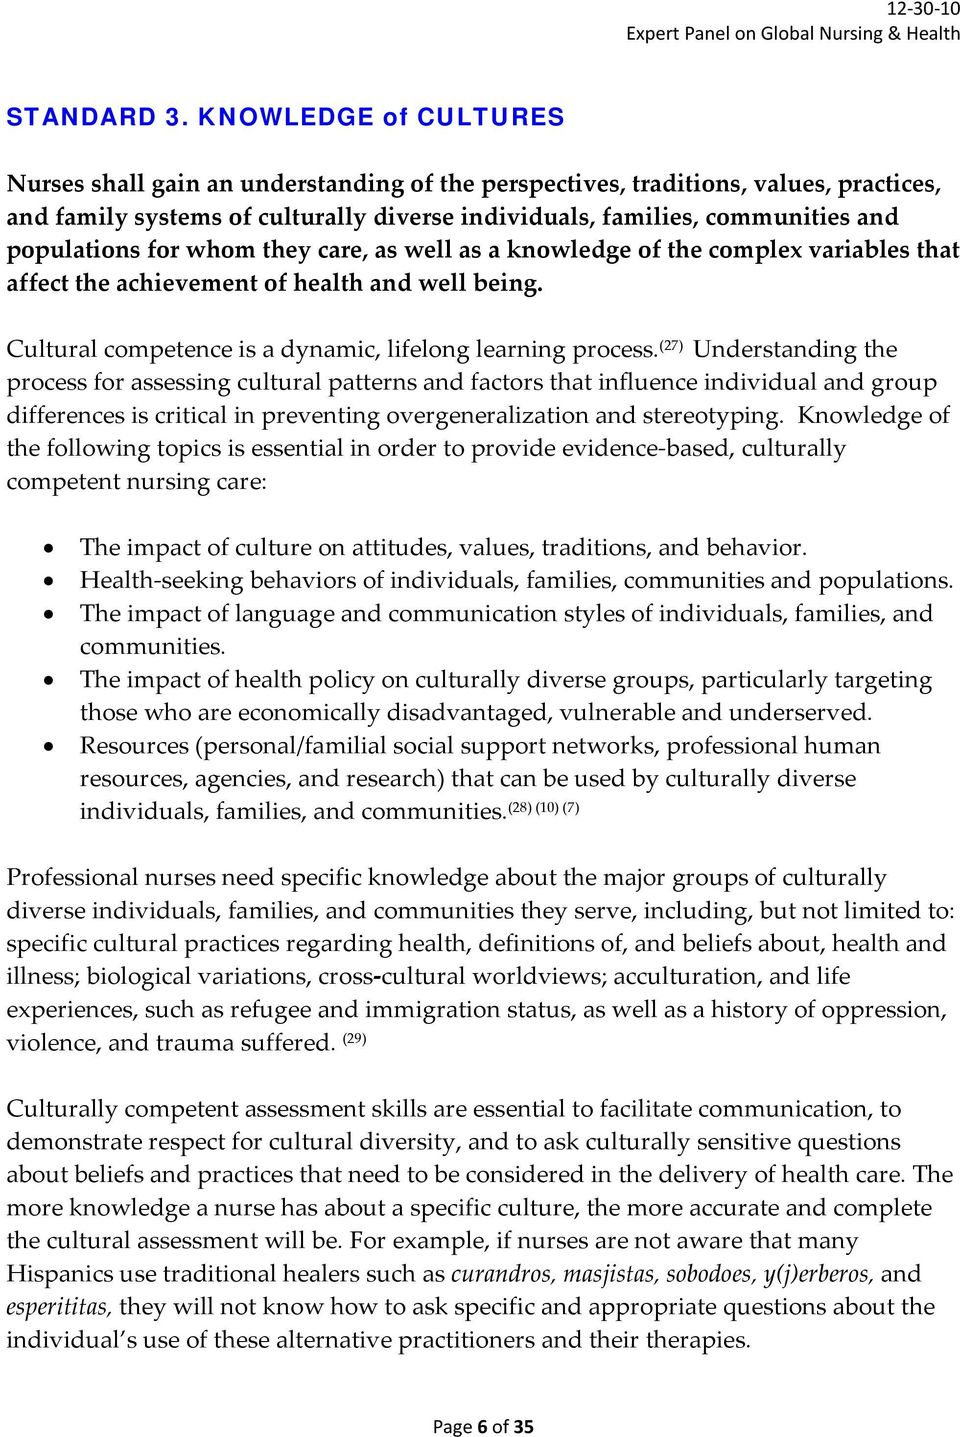 populations for whom they care, as well as a knowledge of the complex variables that affect the achievement of health and well being. Cultural competence is a dynamic, lifelong learning process.